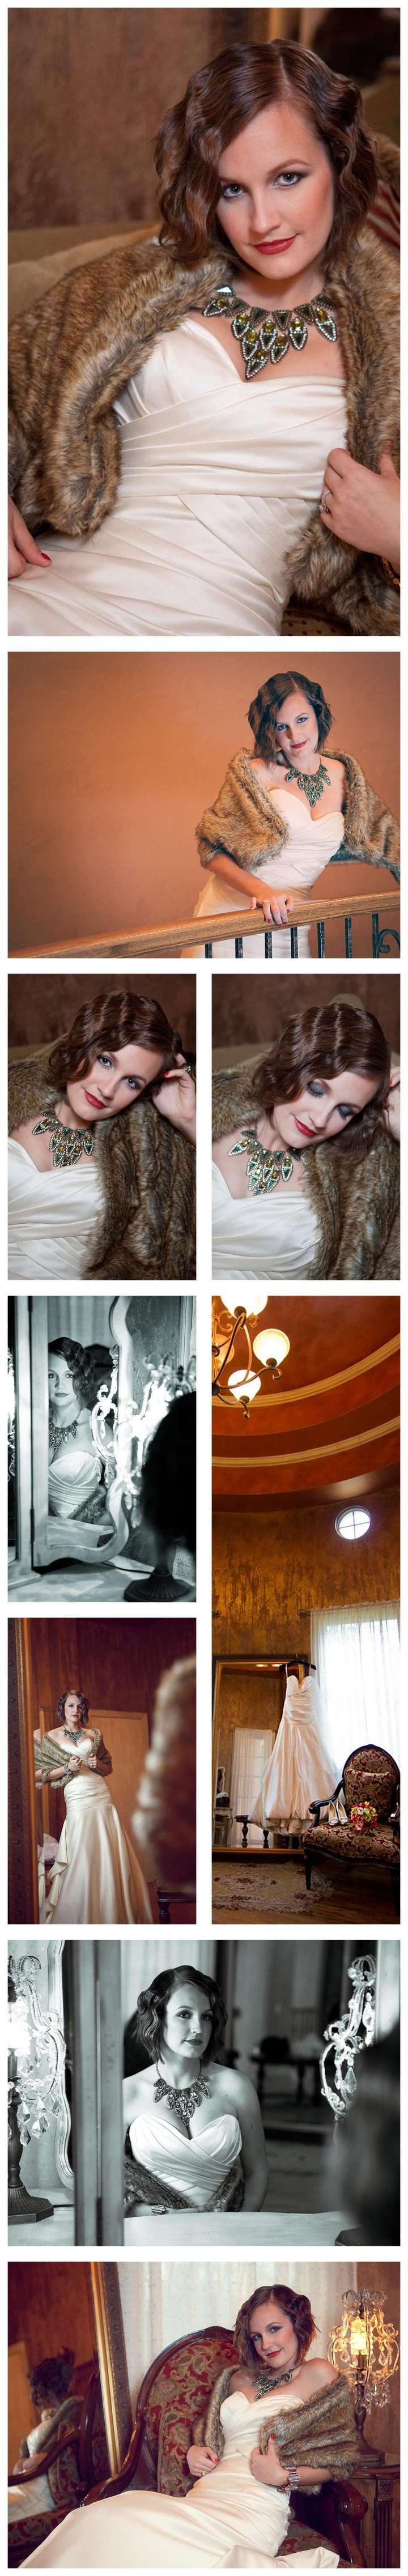 Chateau Polonez, C. Baron Photography, Great Gatsby, 20's inspired, bridals, fur, art deco jewelry, Houston Wedding Photographer